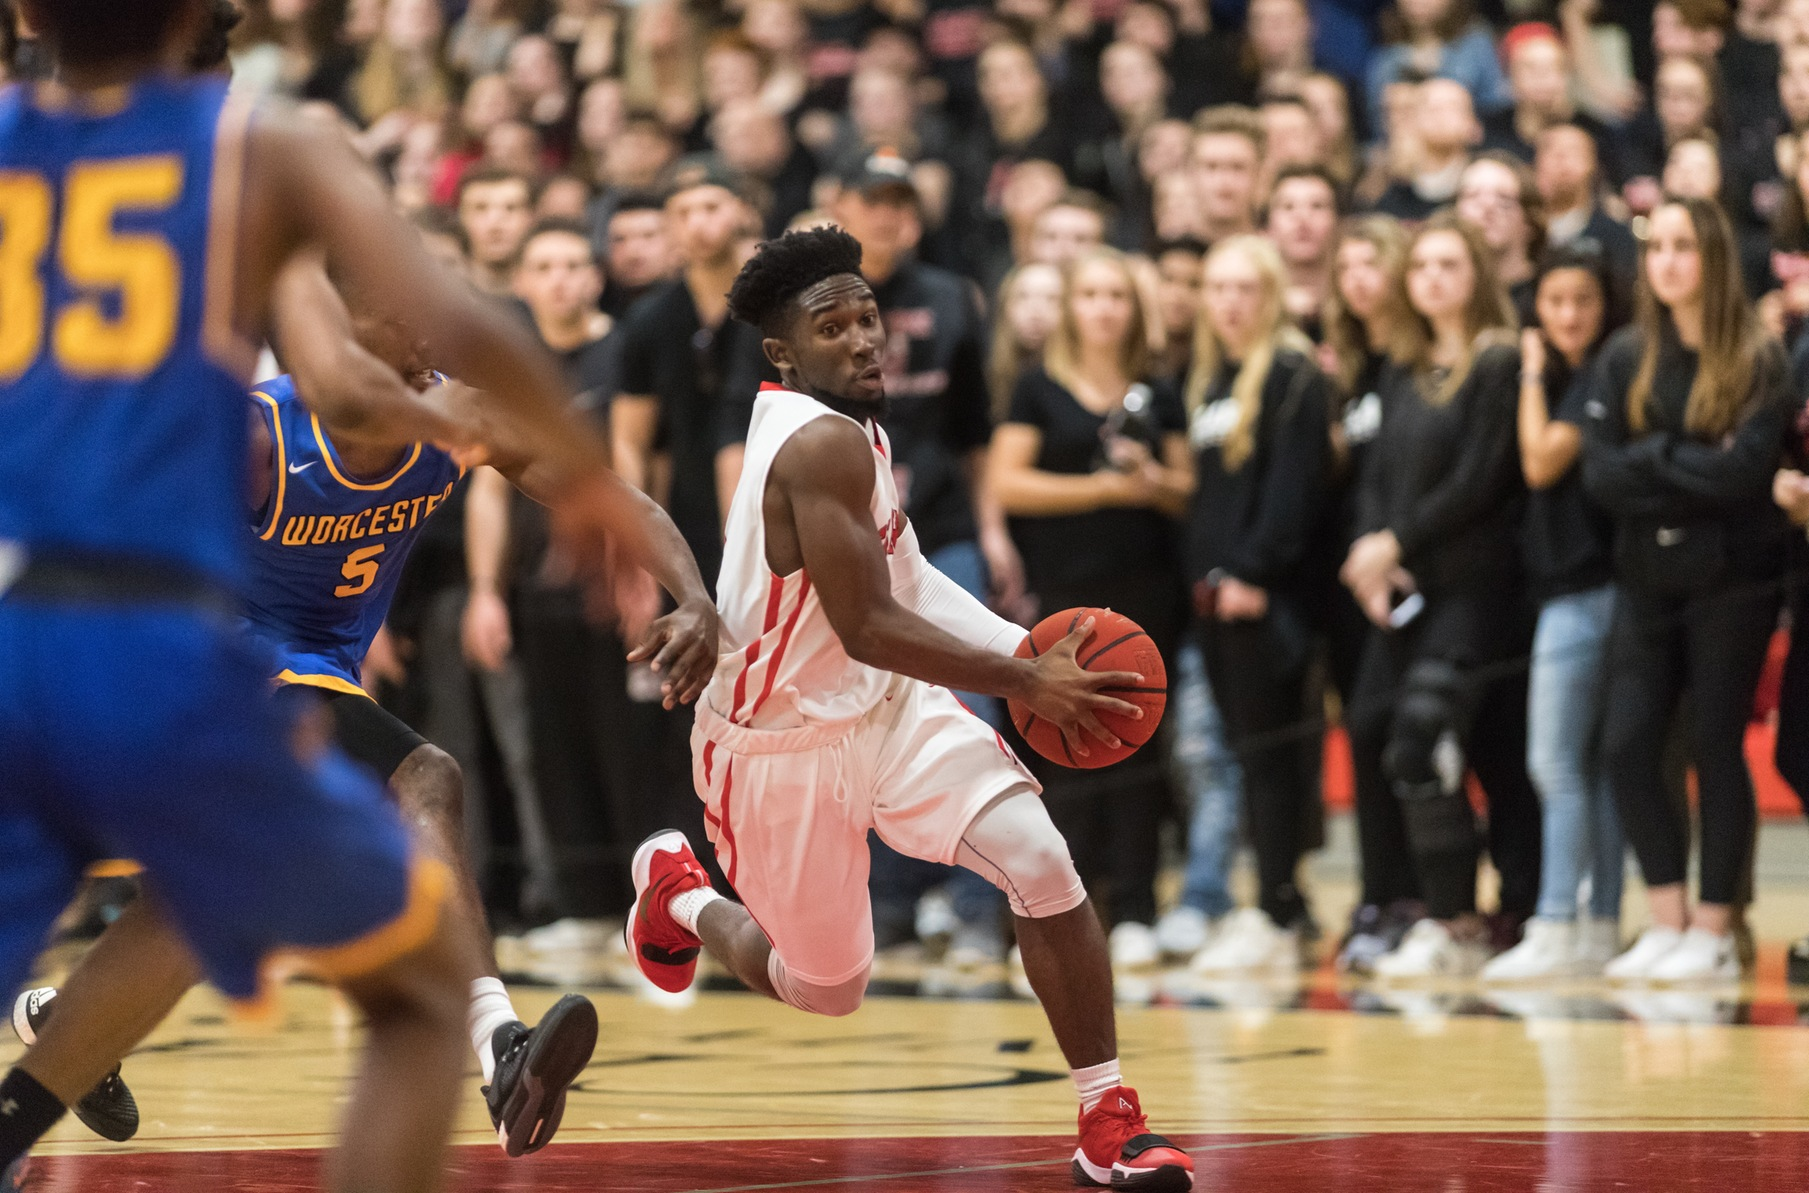 Cougars Defeat Worcester State in Midnight Mayhem Battle, 92-89